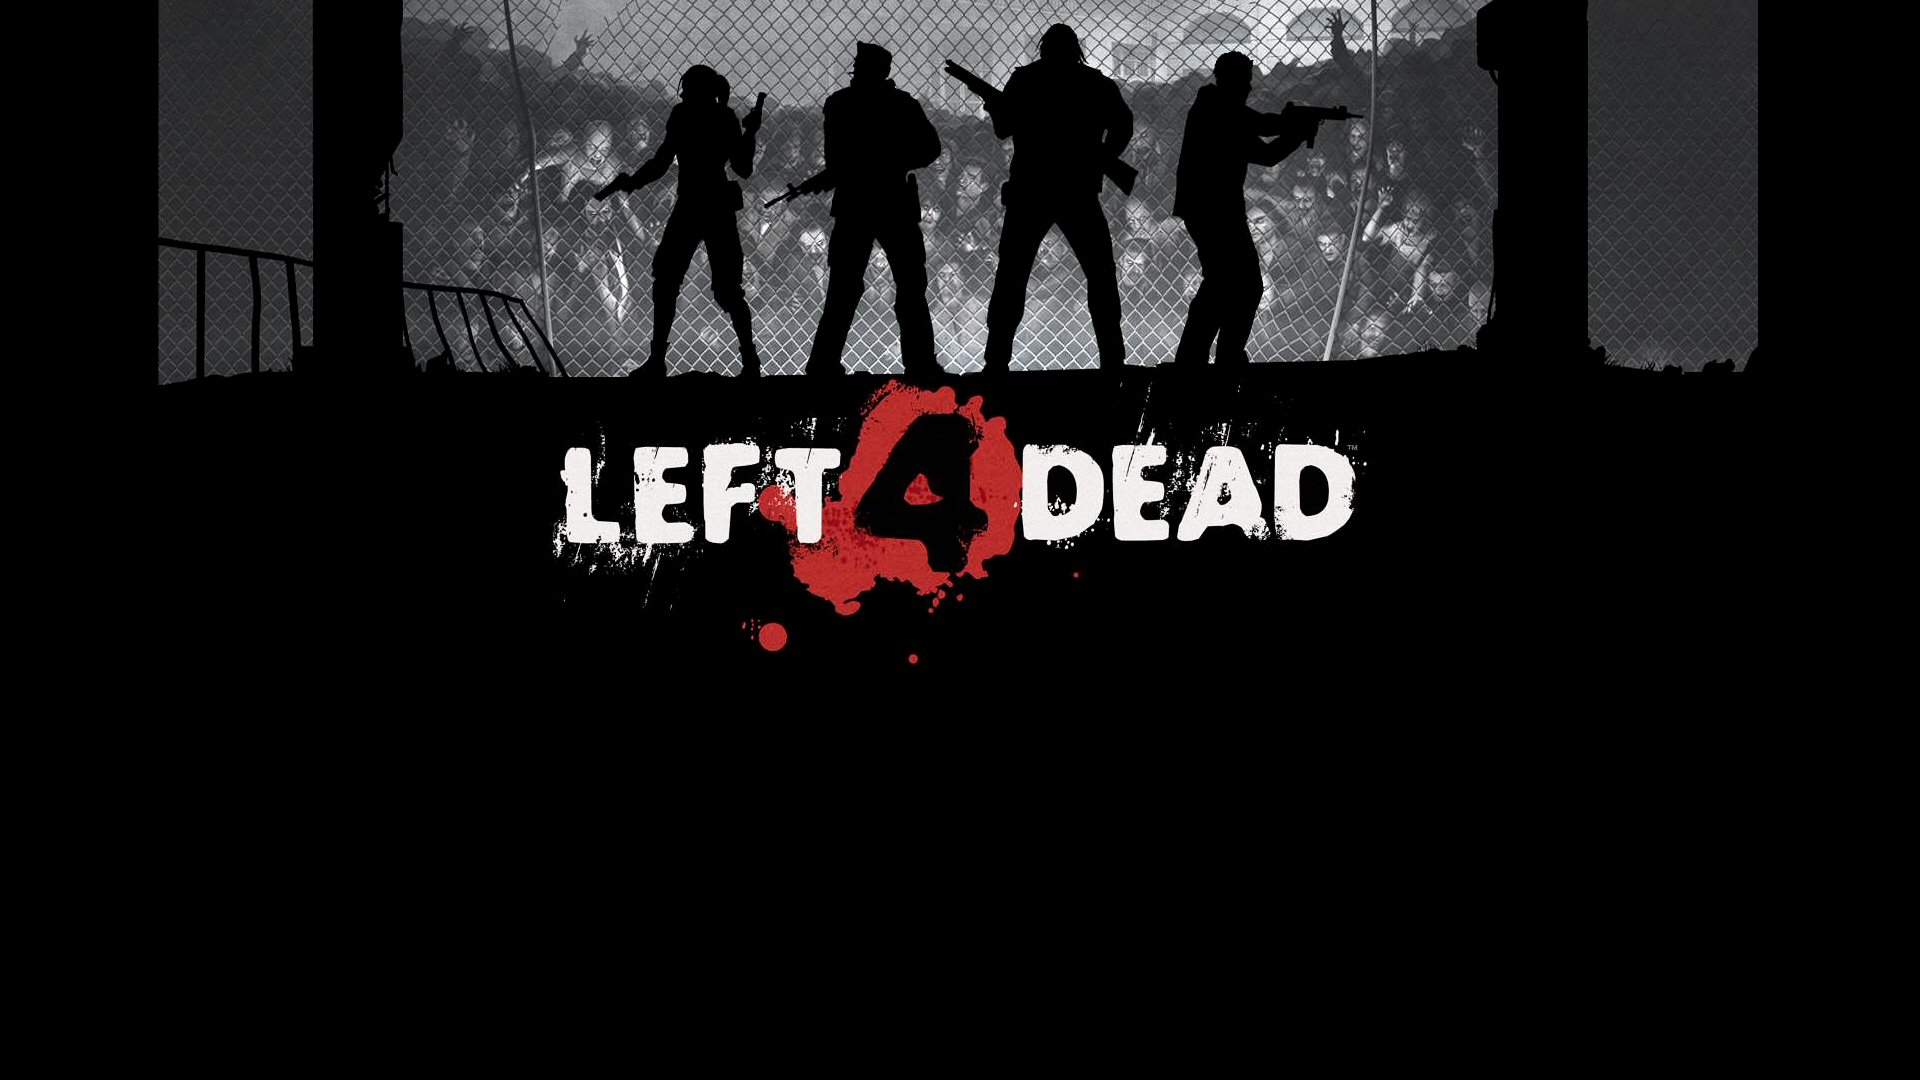 47+] Left 4 Dead Zoey Wallpaper on WallpaperSafari